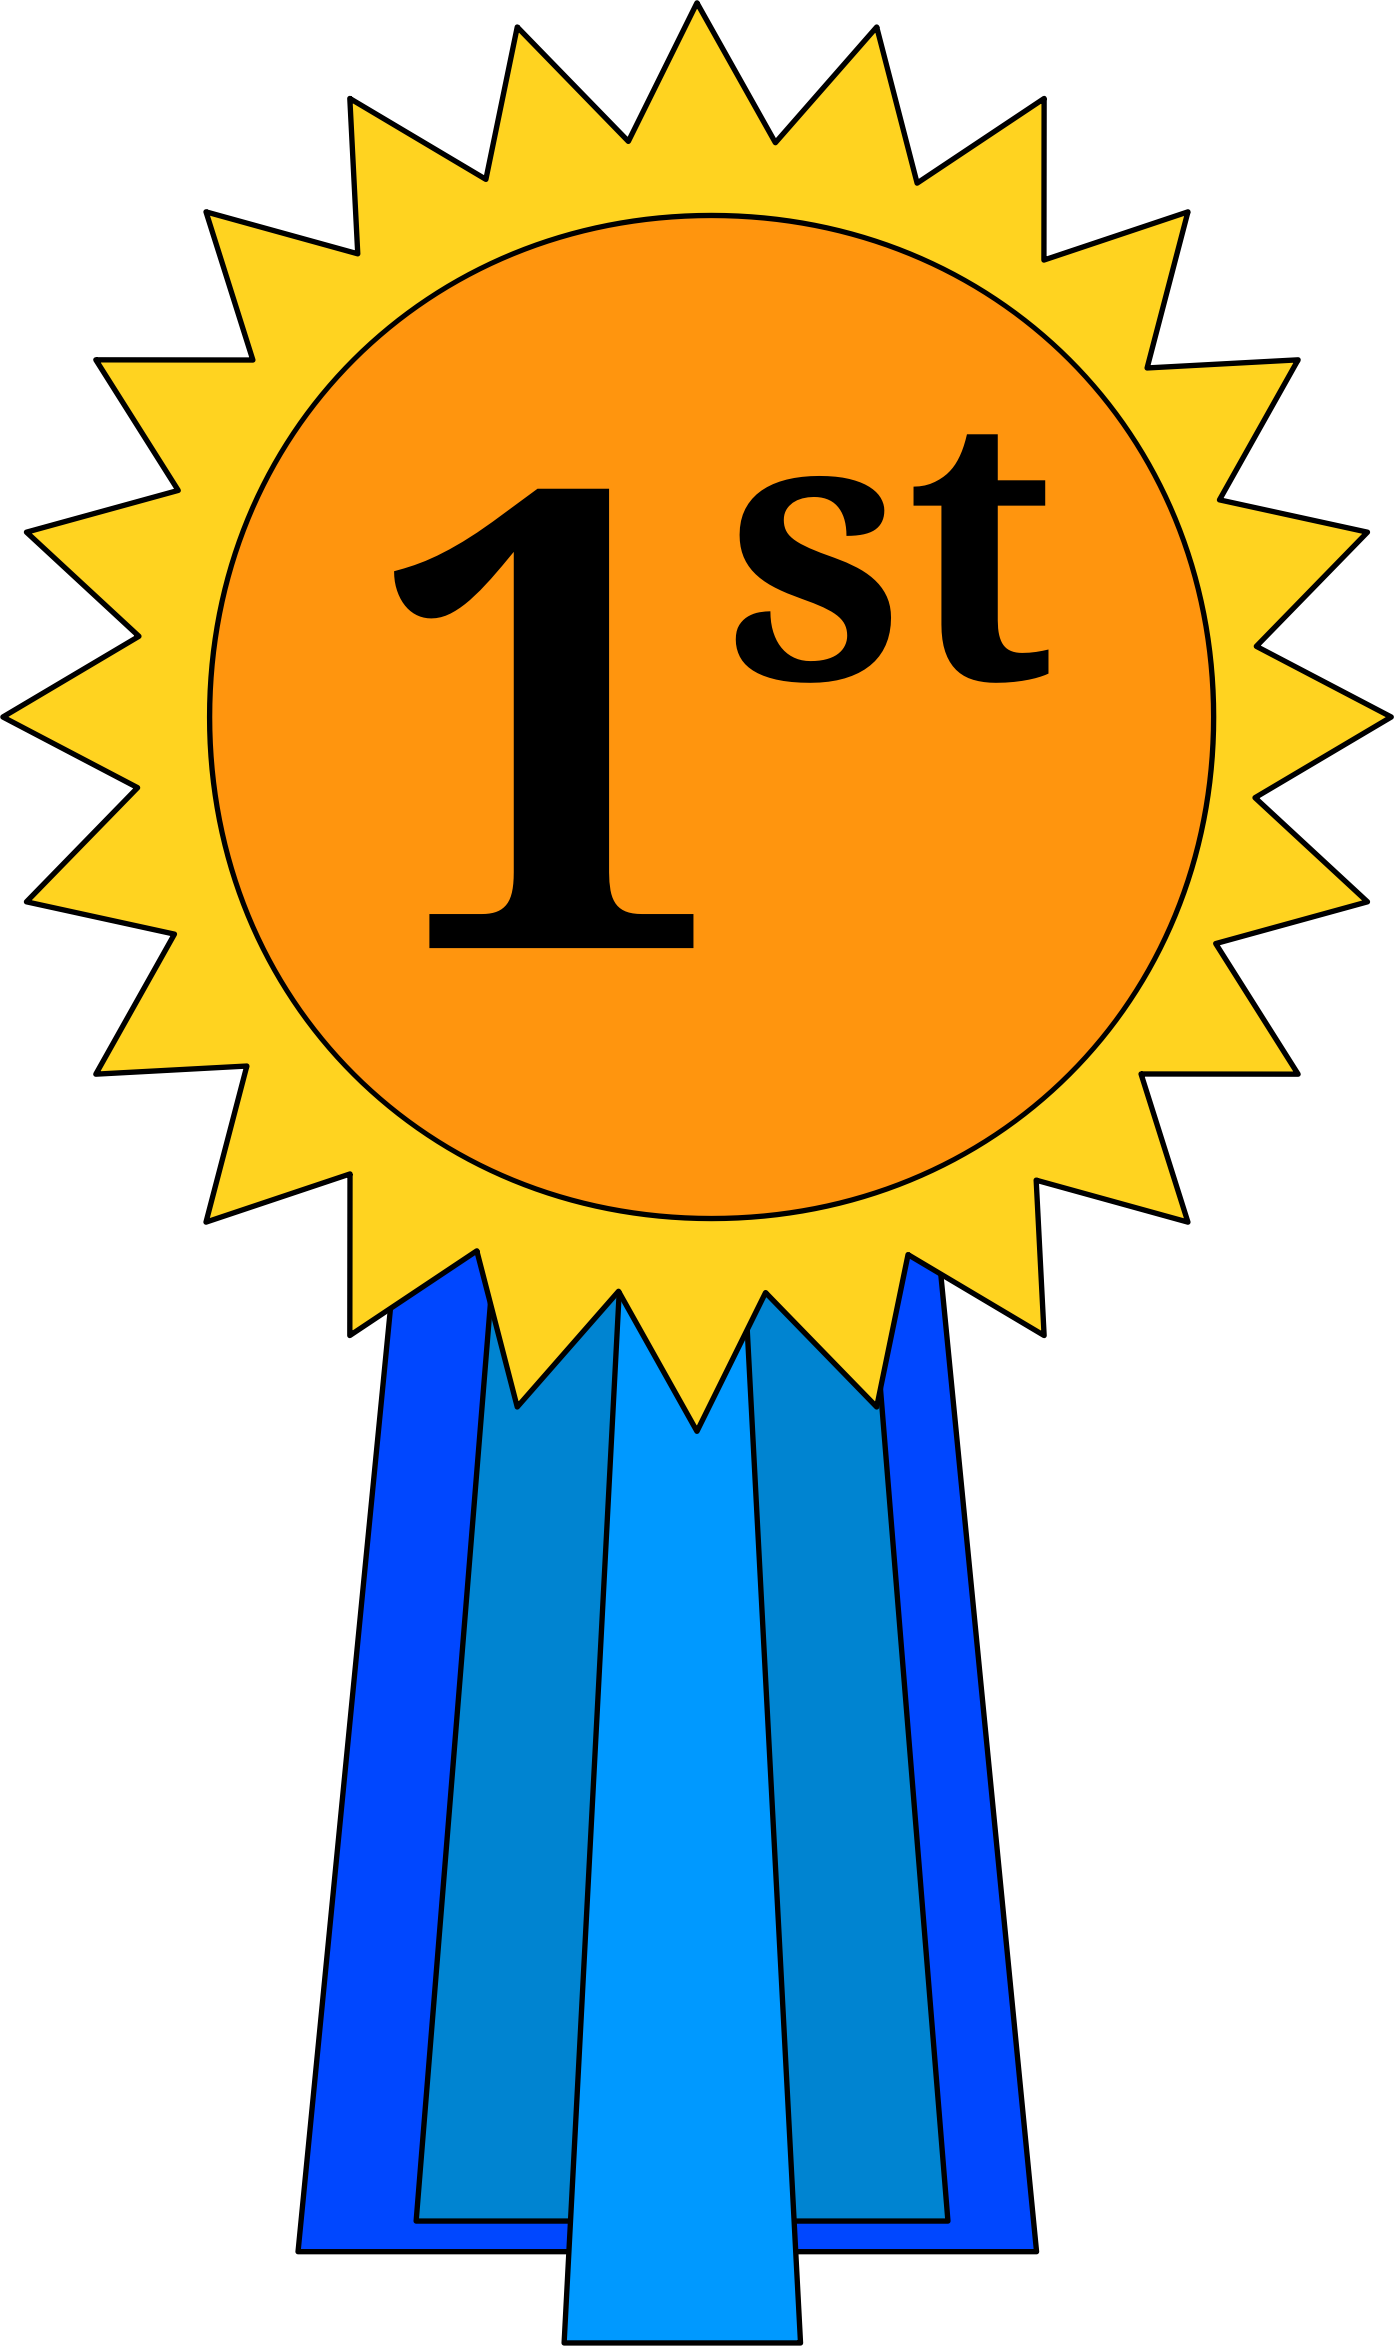 st place ribbon. Learning clipart award